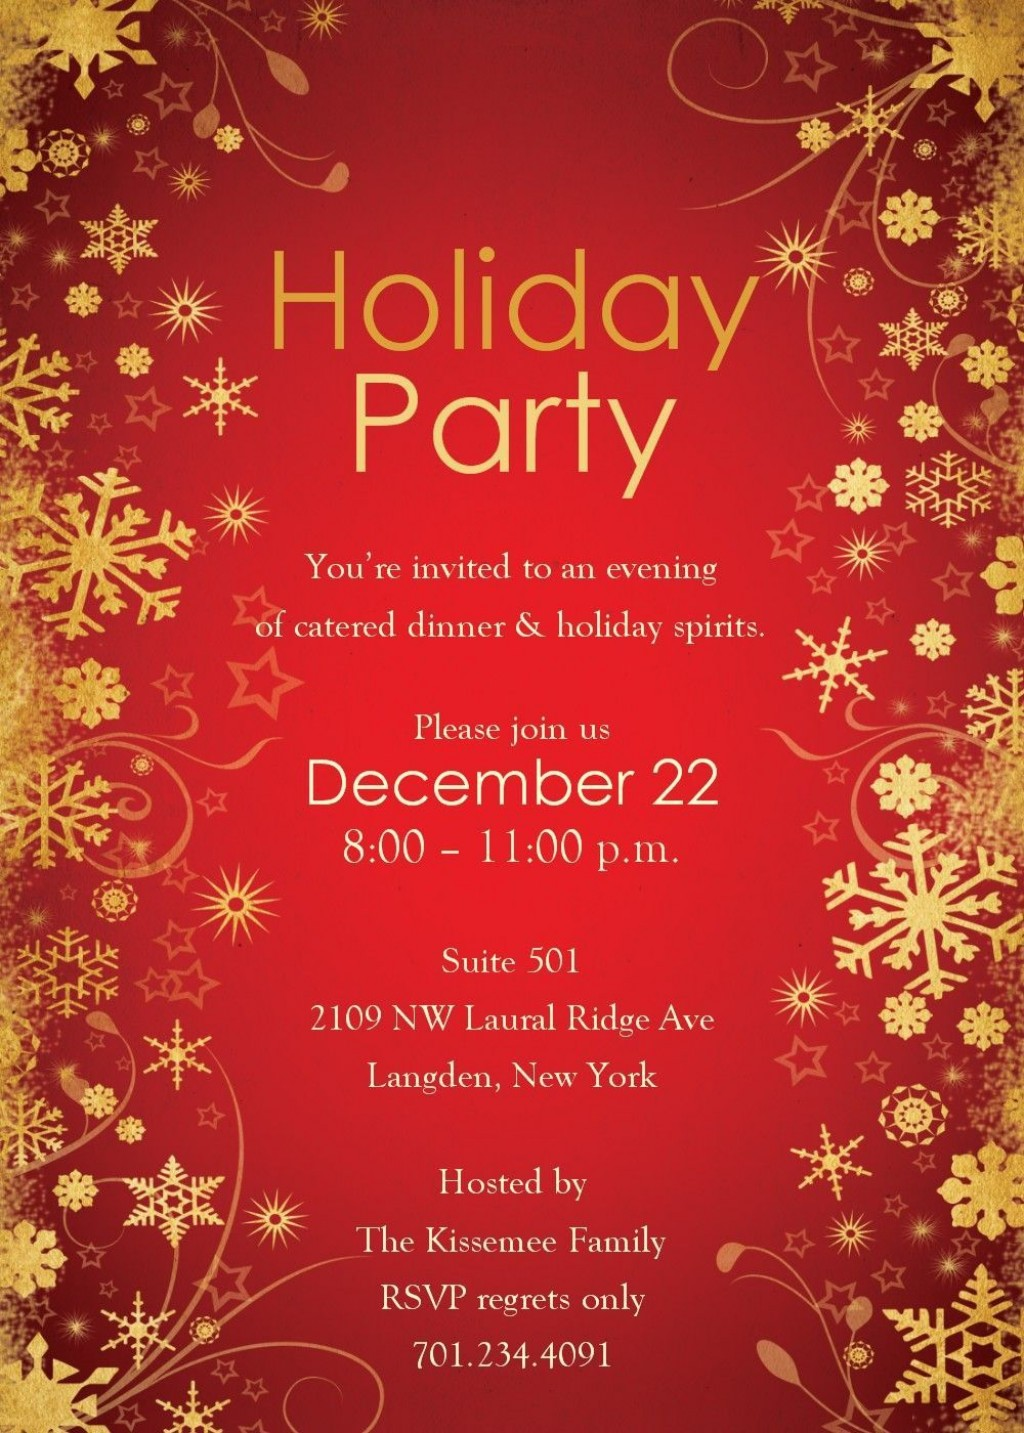 007 Excellent Free Holiday Invitation Template Idea  Online Party ChristmaLarge